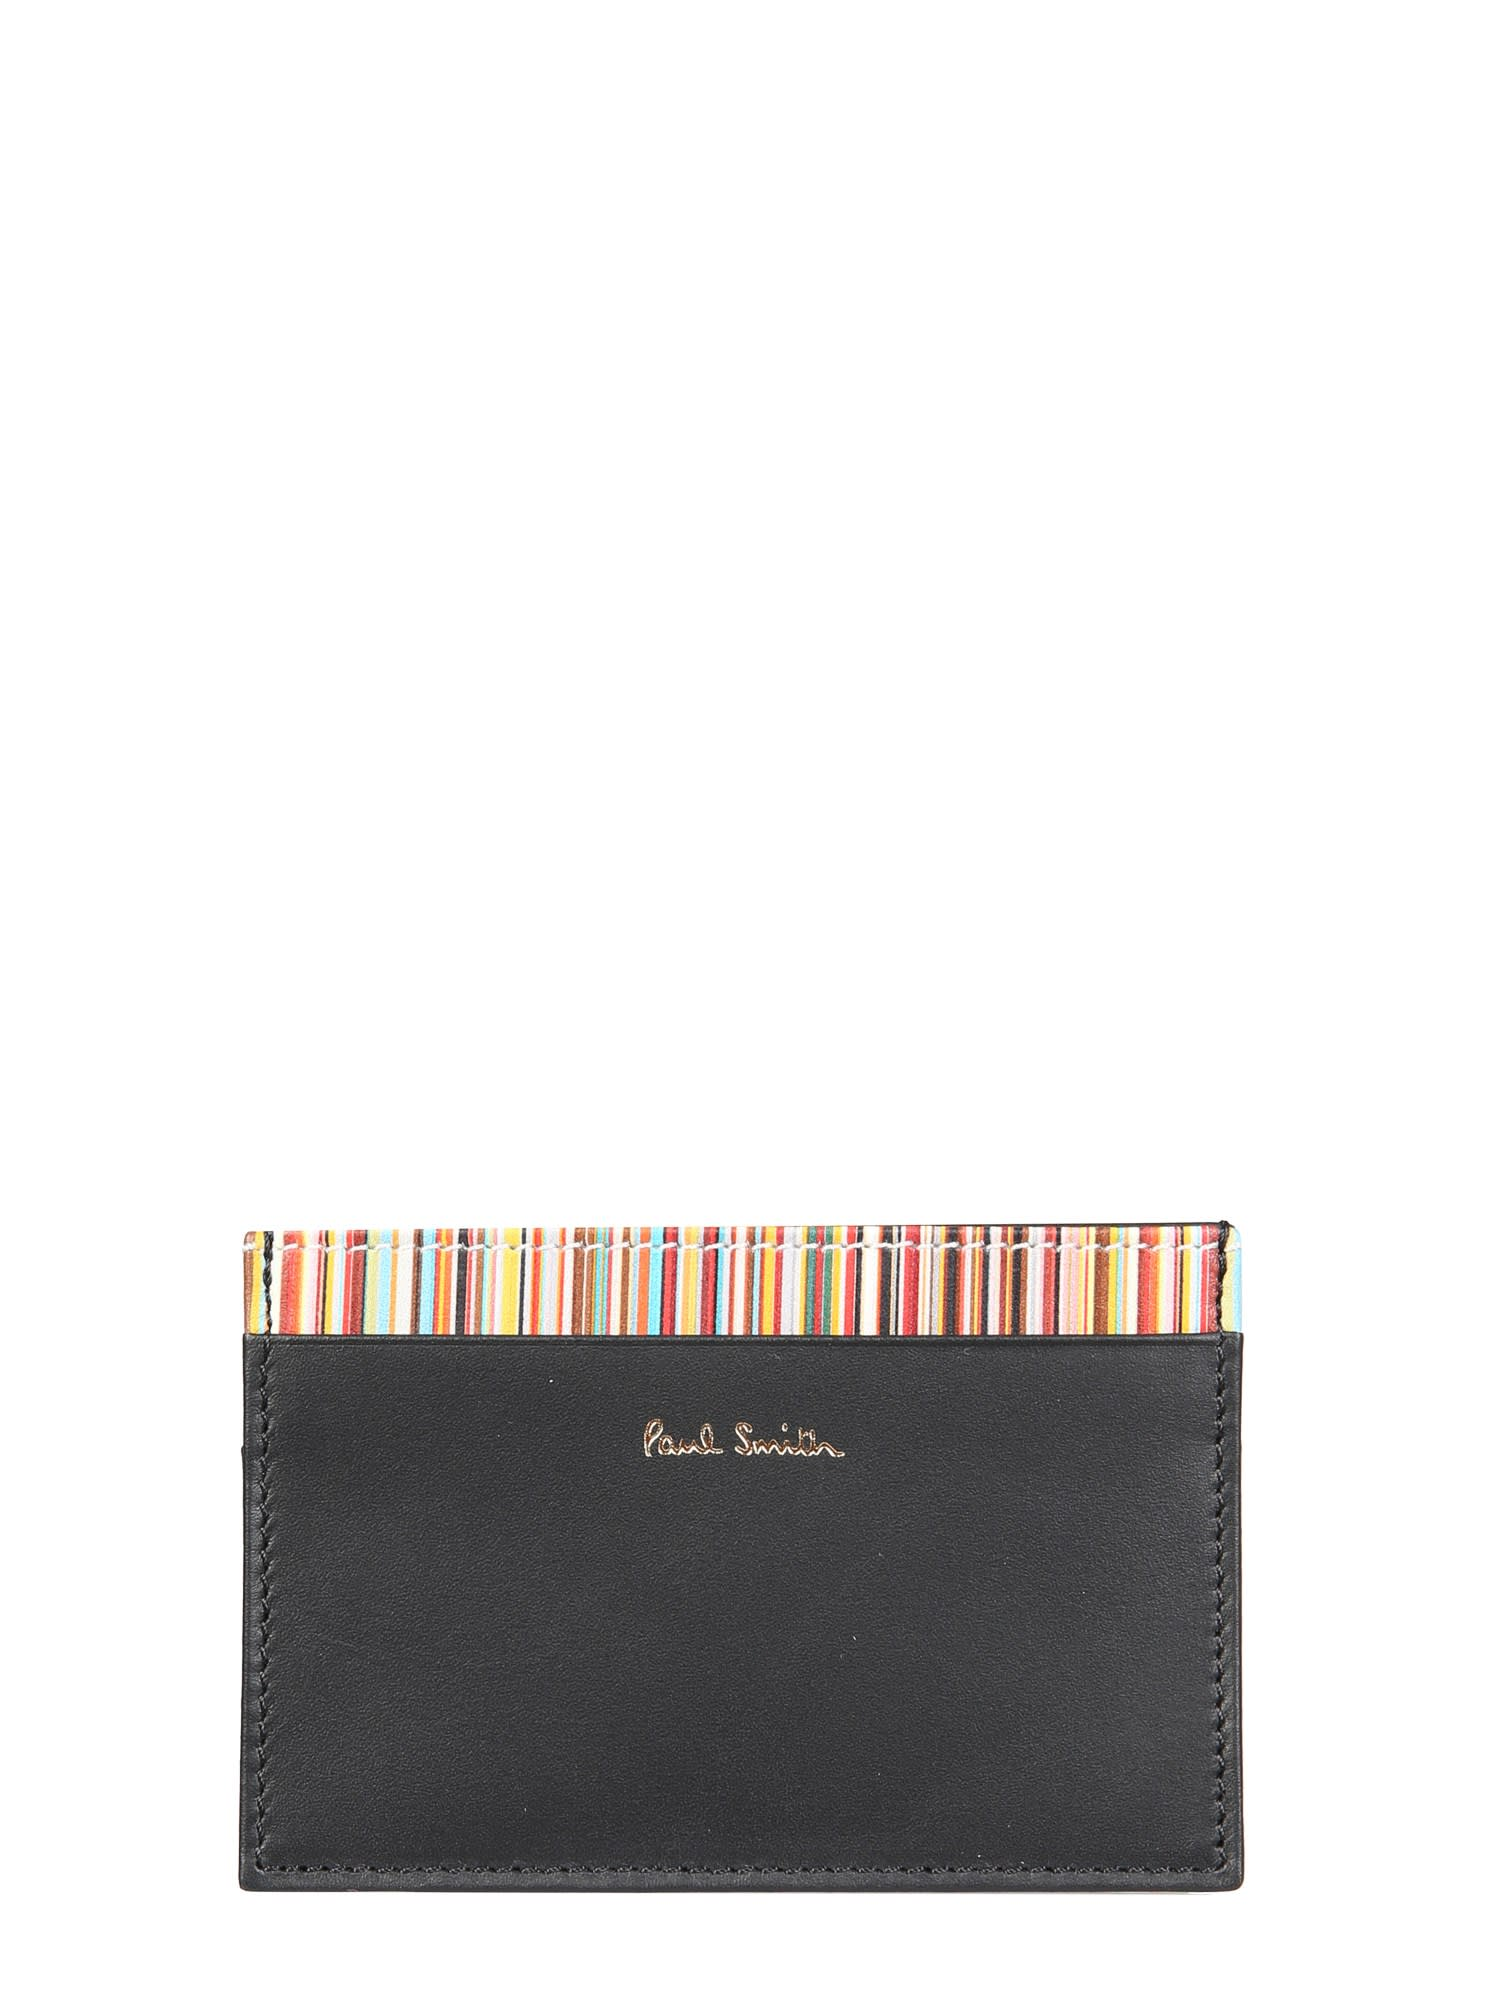 Paul Smith Leather Card Holder